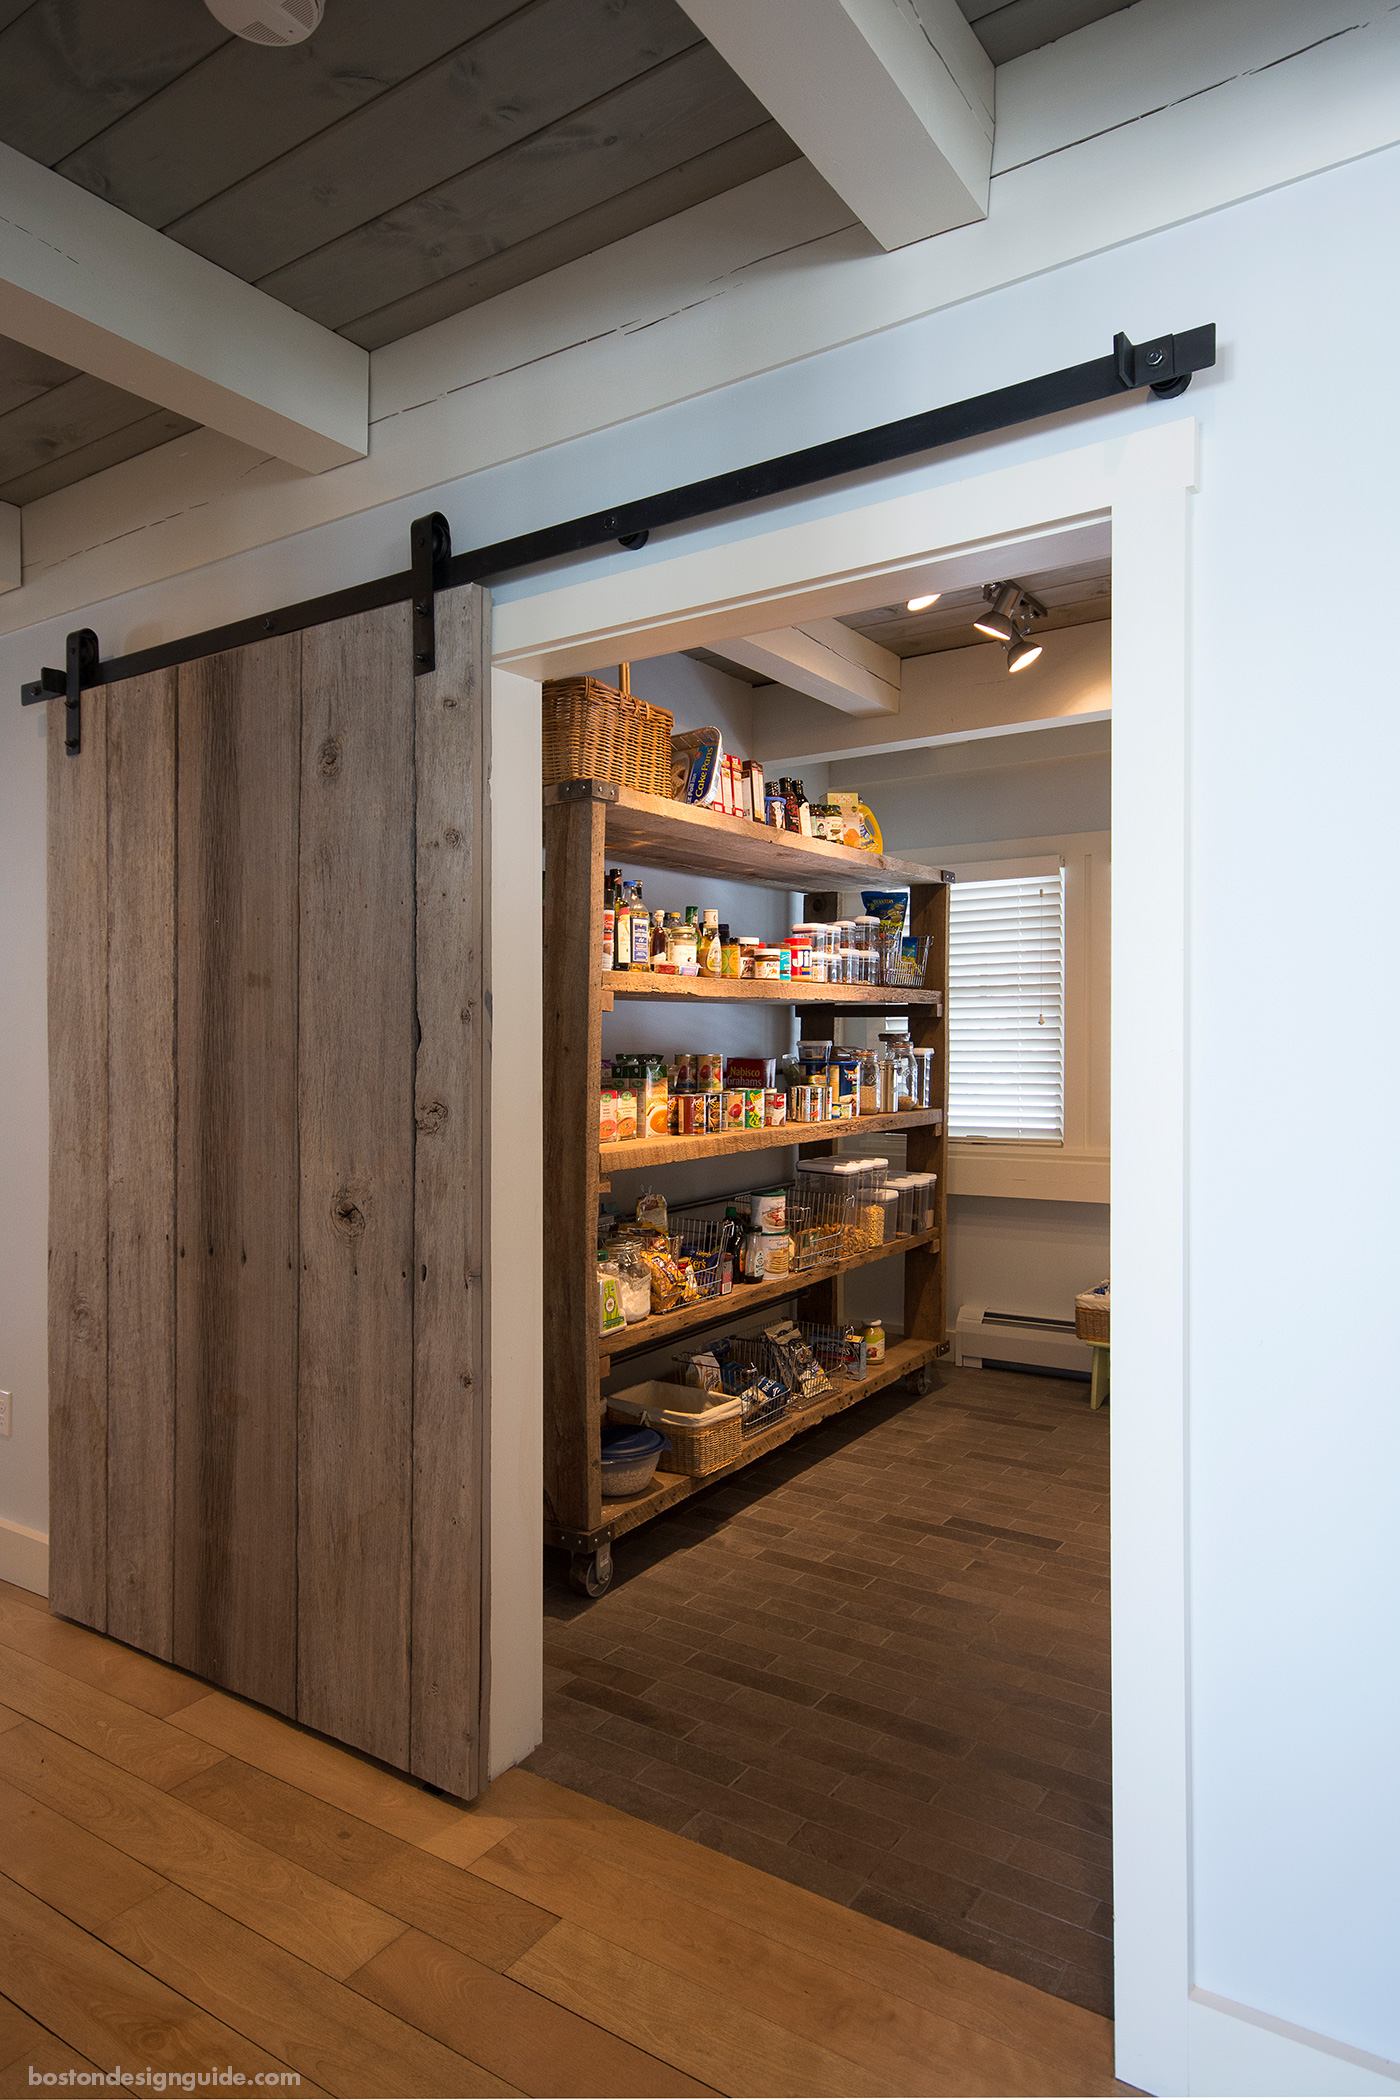 Reclaimed barn door pantry